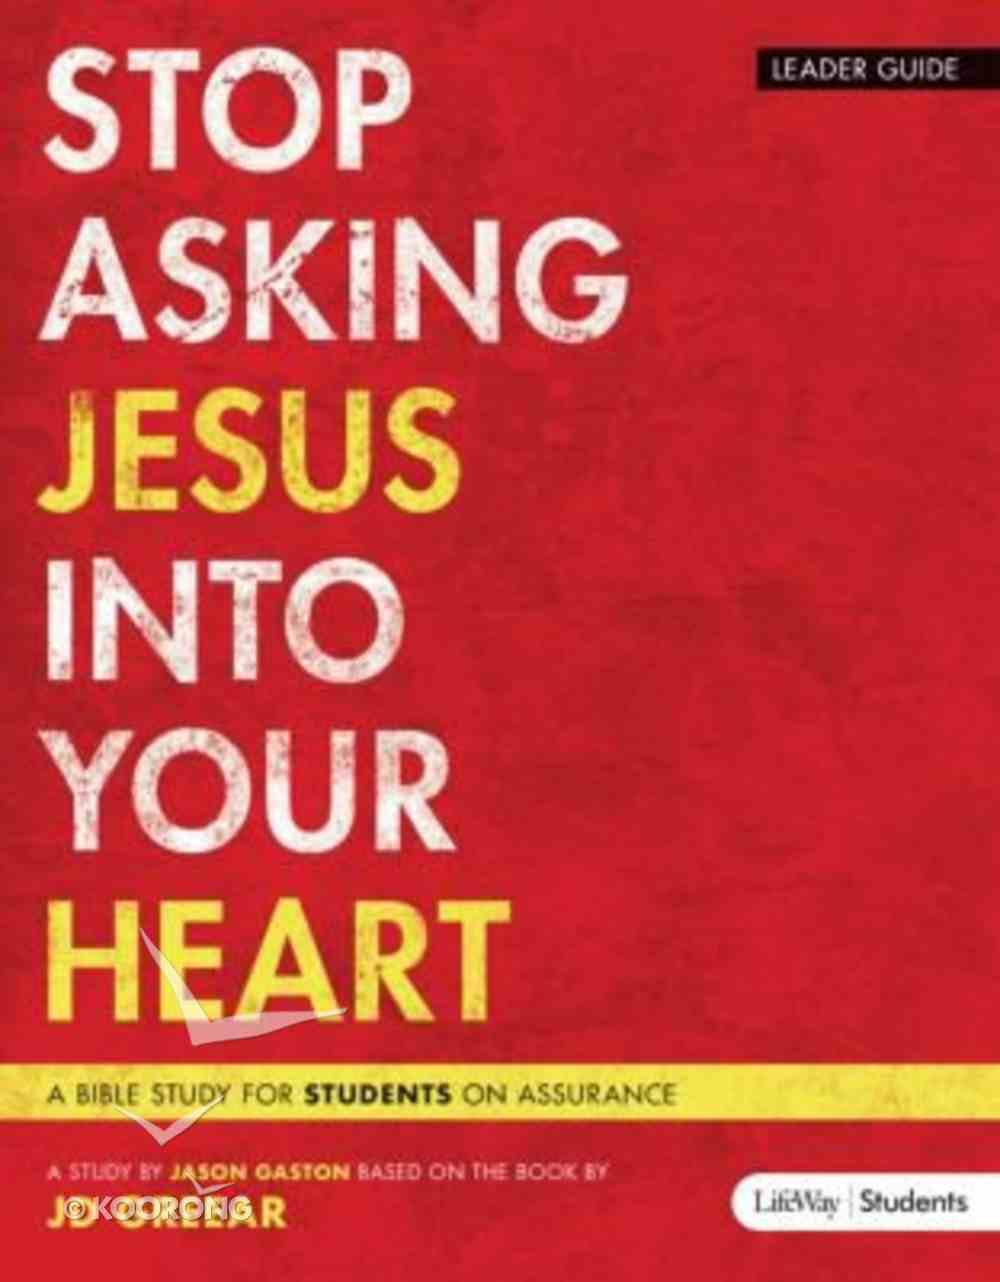 Stop Asking Jesus Into Your Heart (Ledaer Guide) Paperback